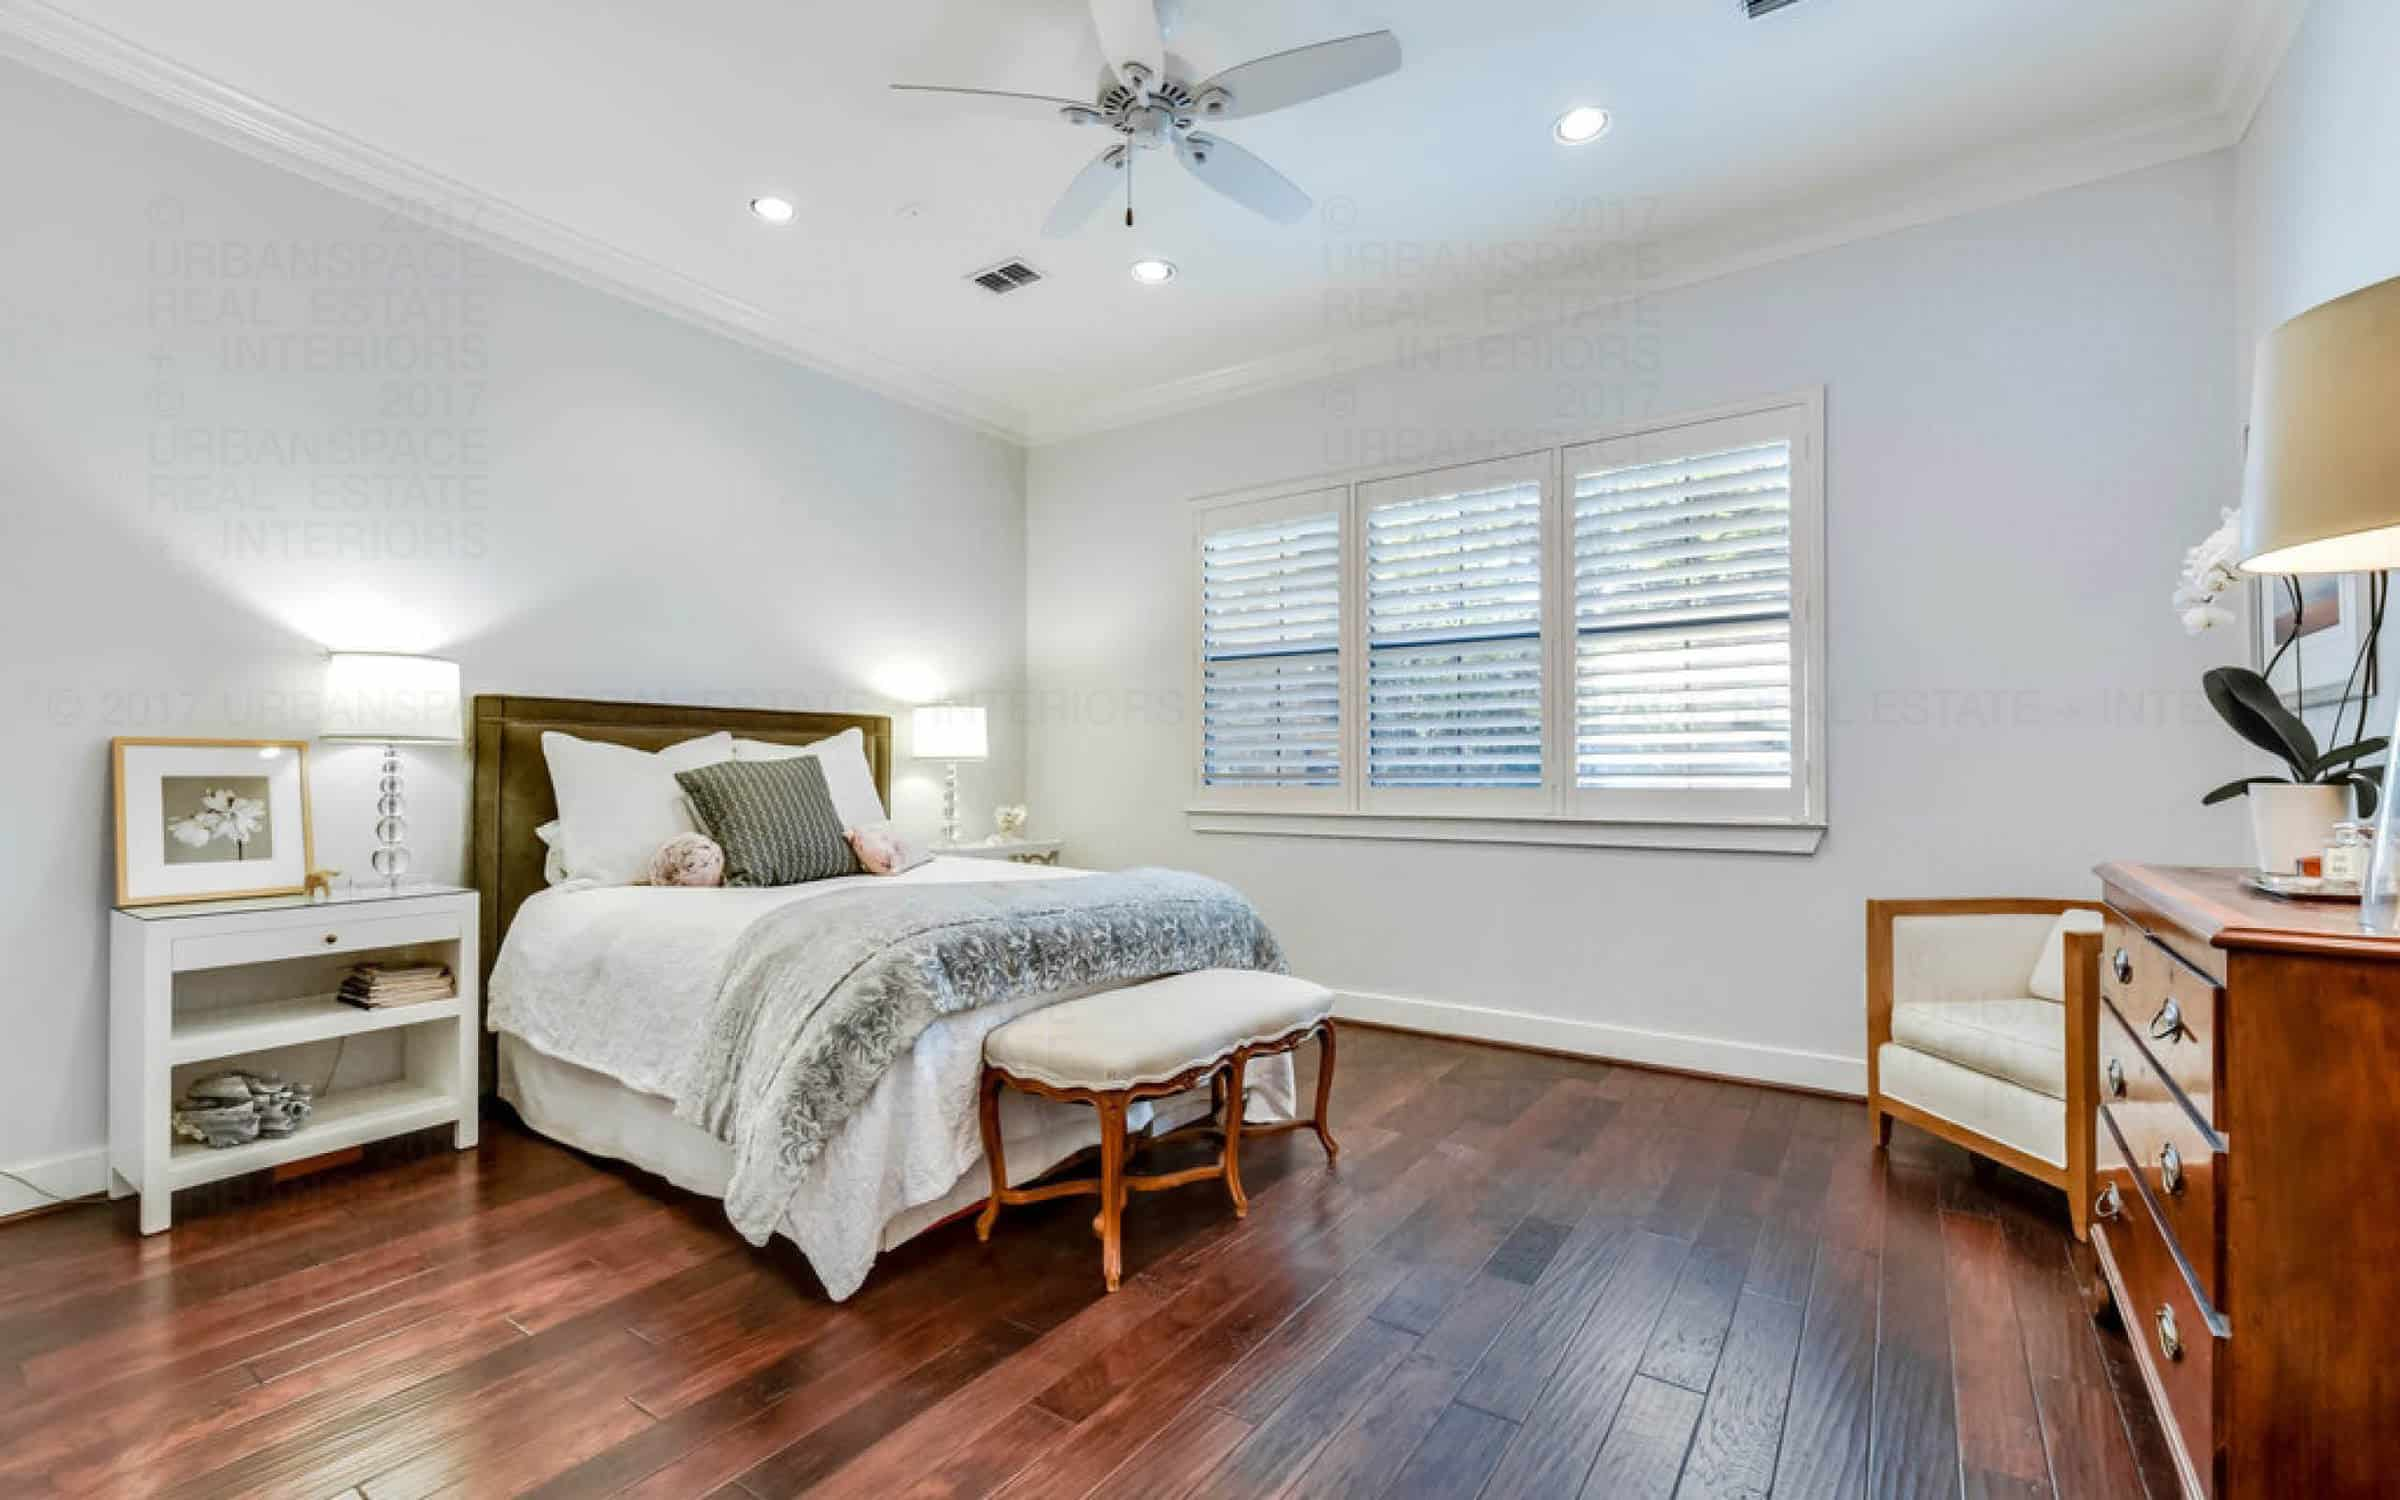 bedroom wood flooring open light windows liberty park austin house